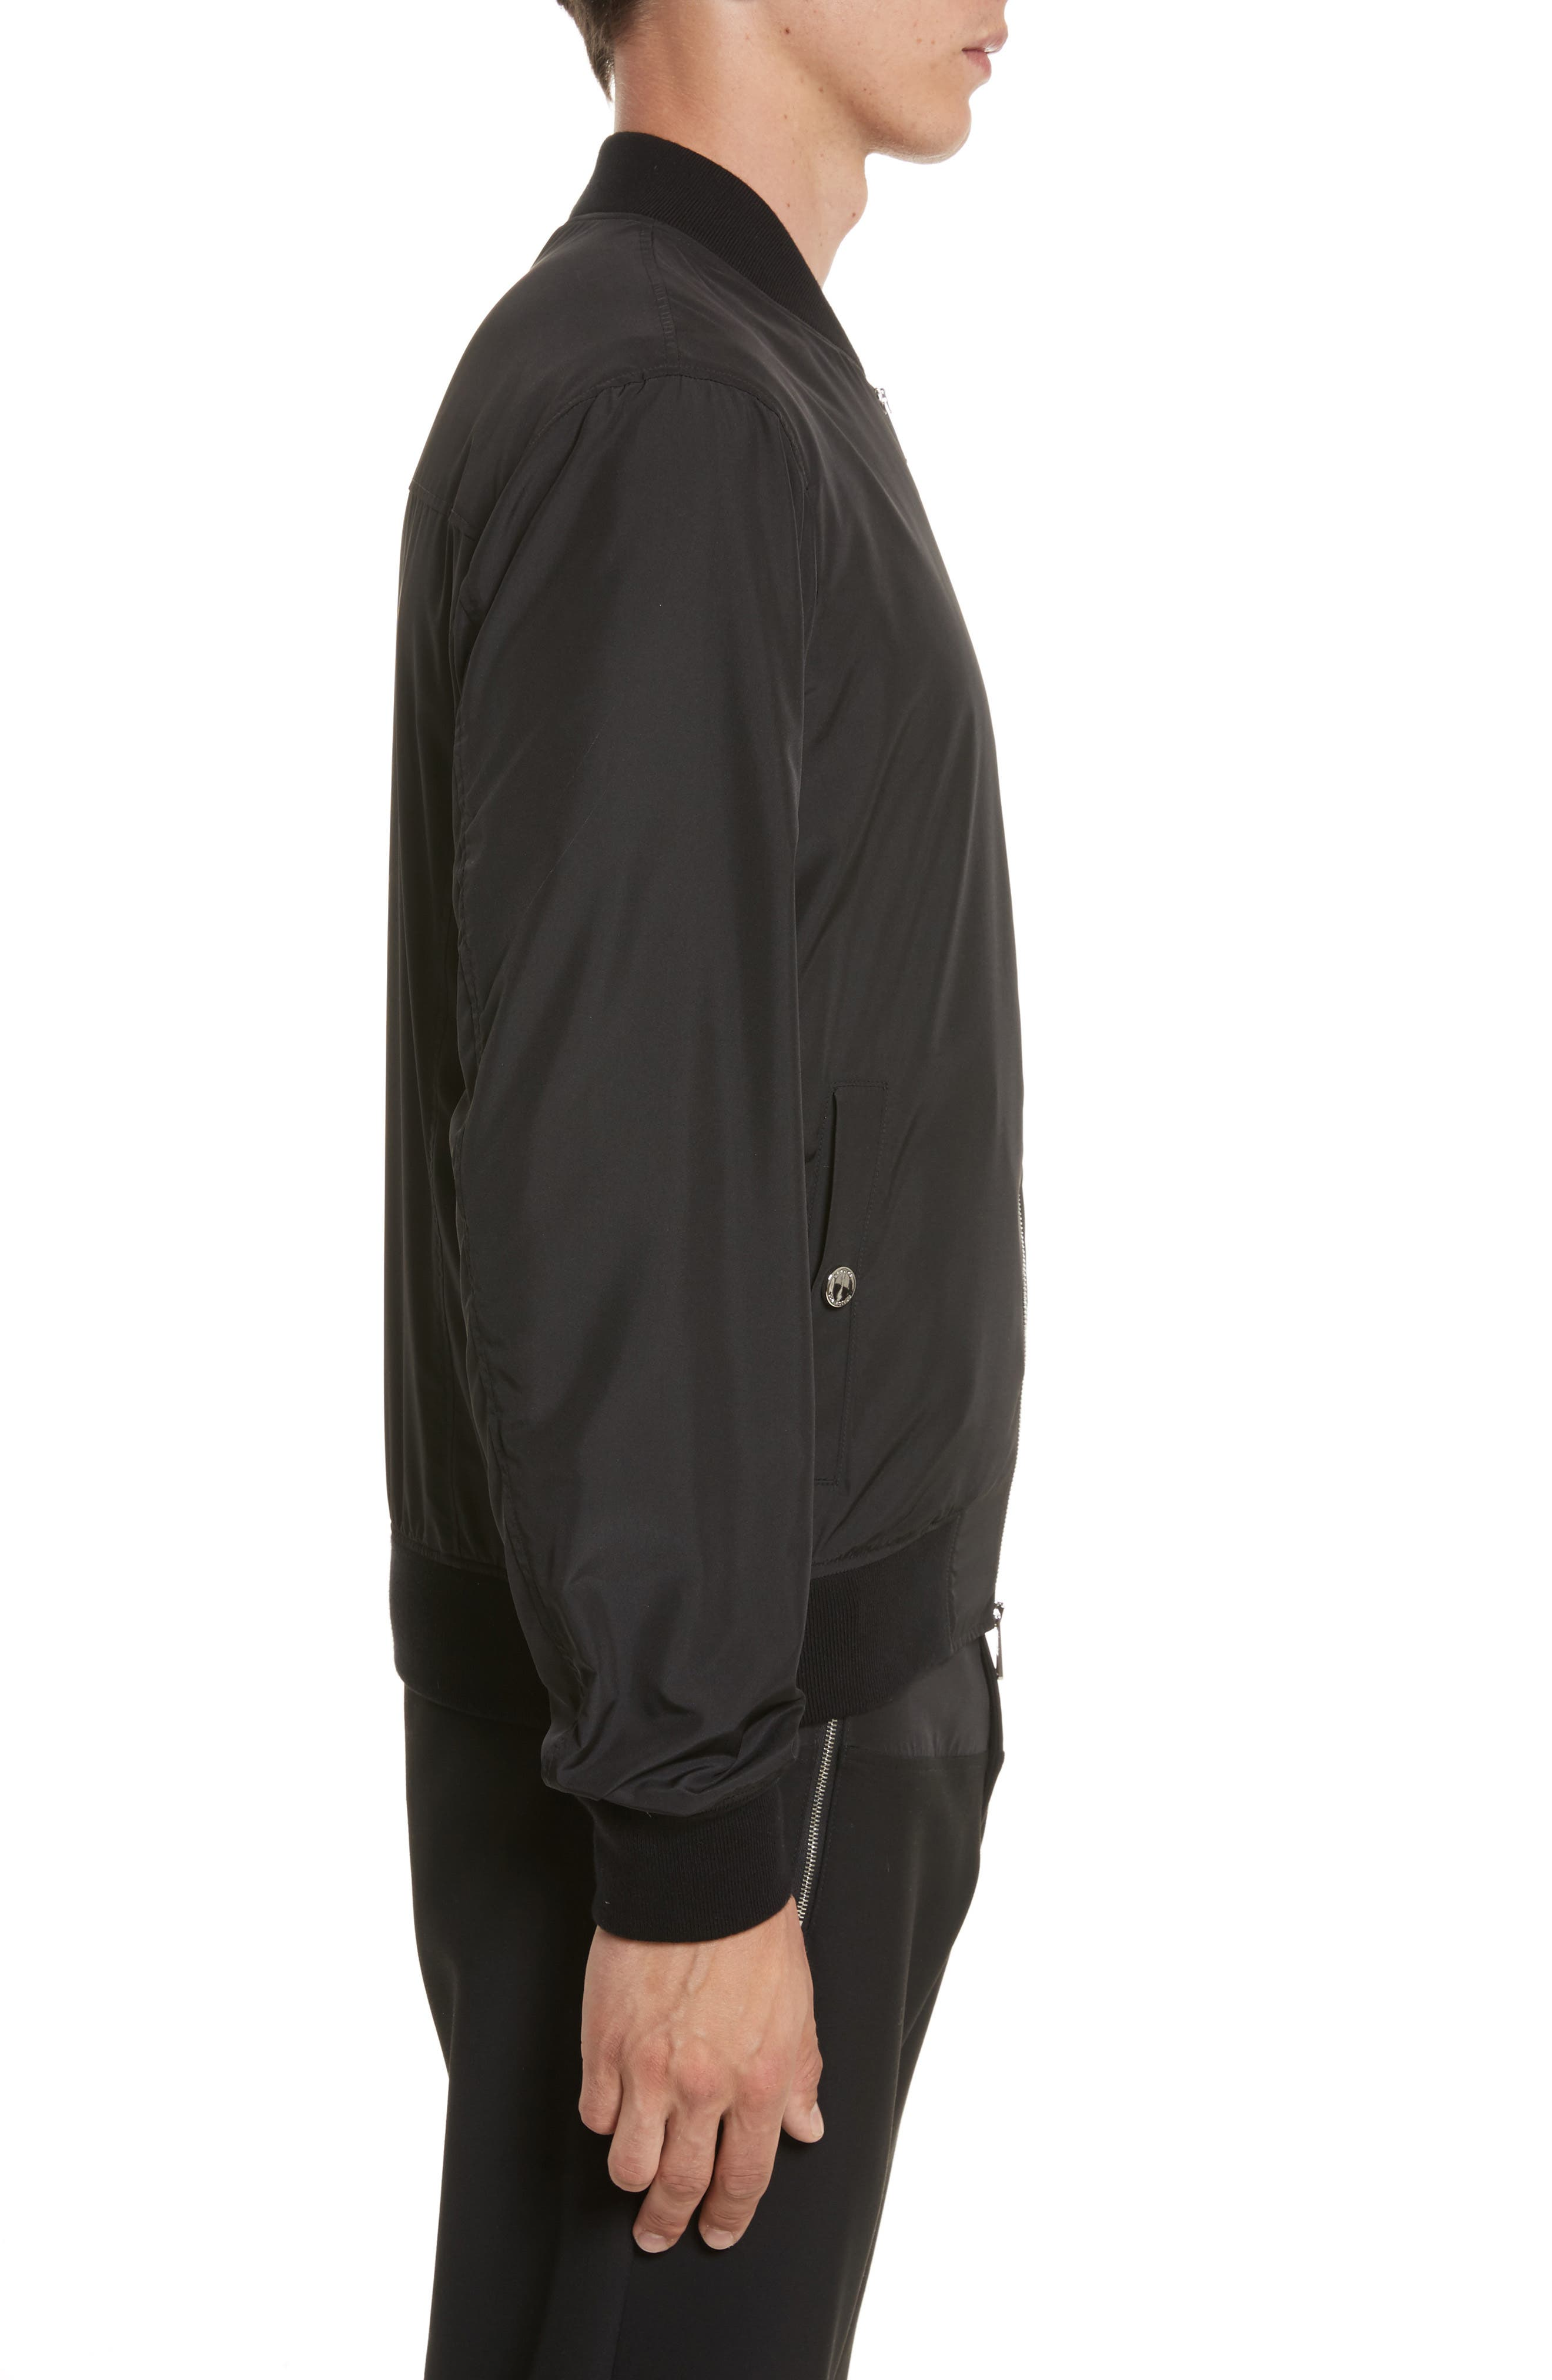 Bomber Jacket with Patch,                             Alternate thumbnail 3, color,                             130